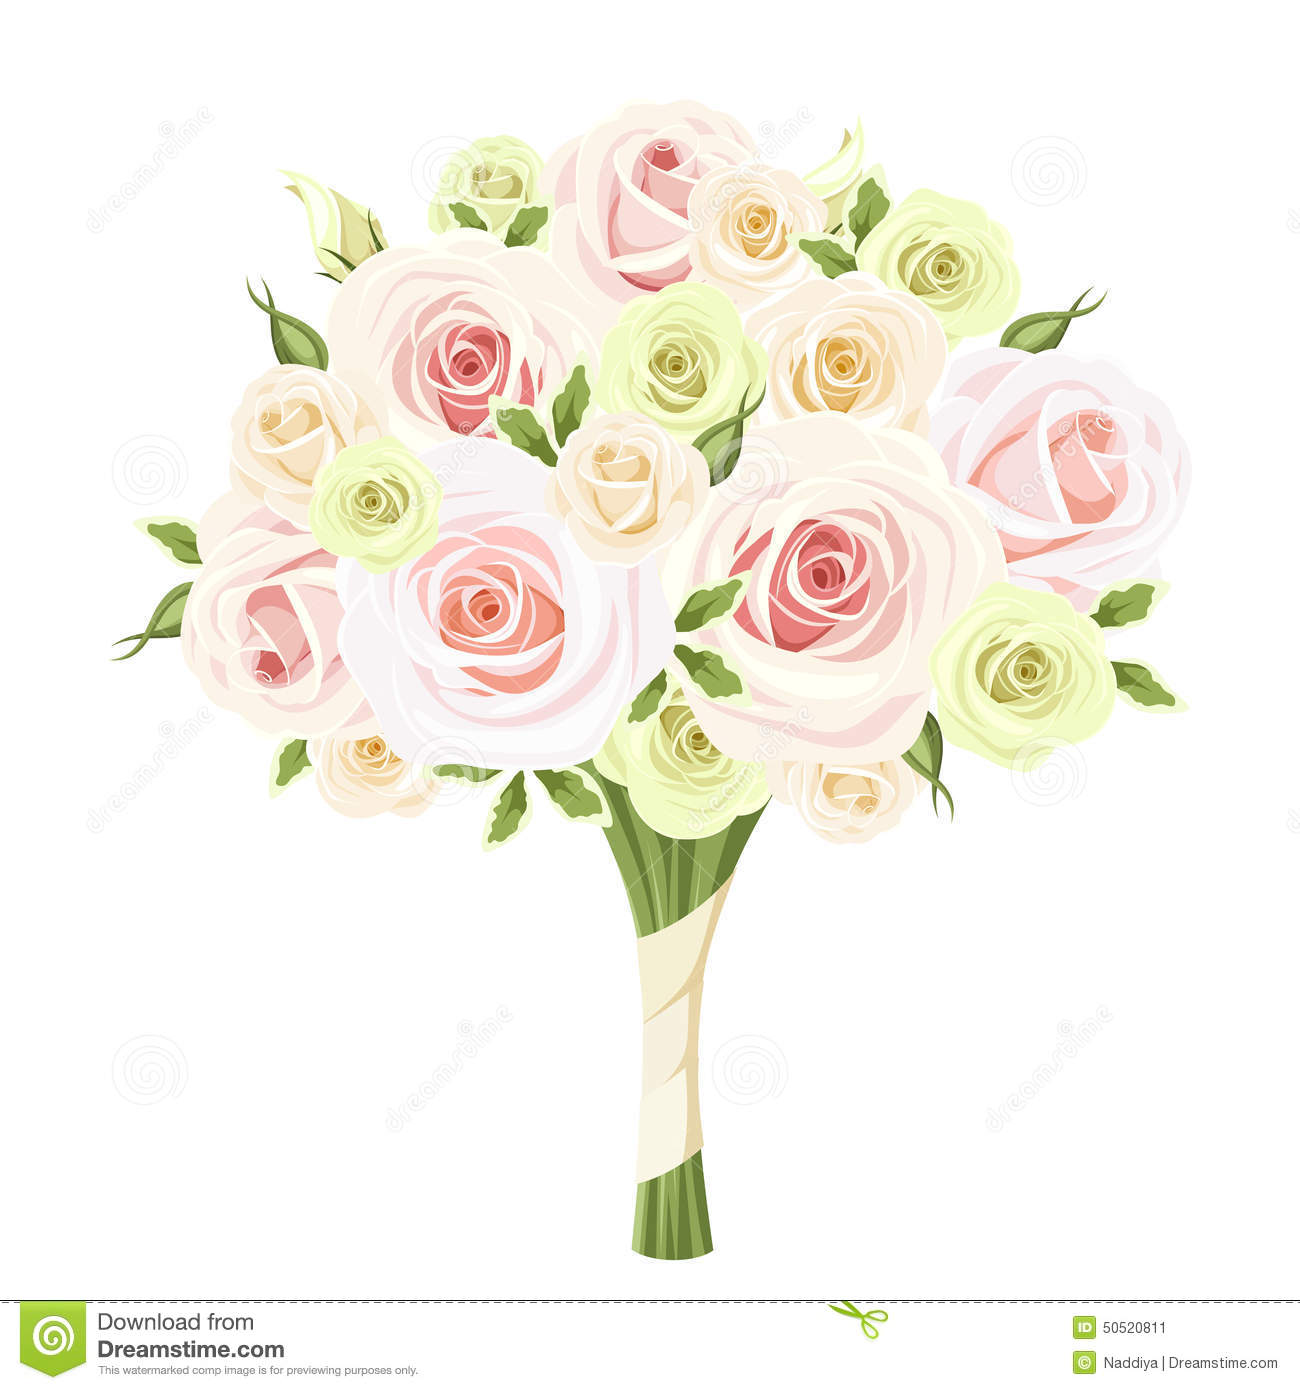 Bridal Flower Bouquet Roses : Wedding bouquet of pink white and green roses vector